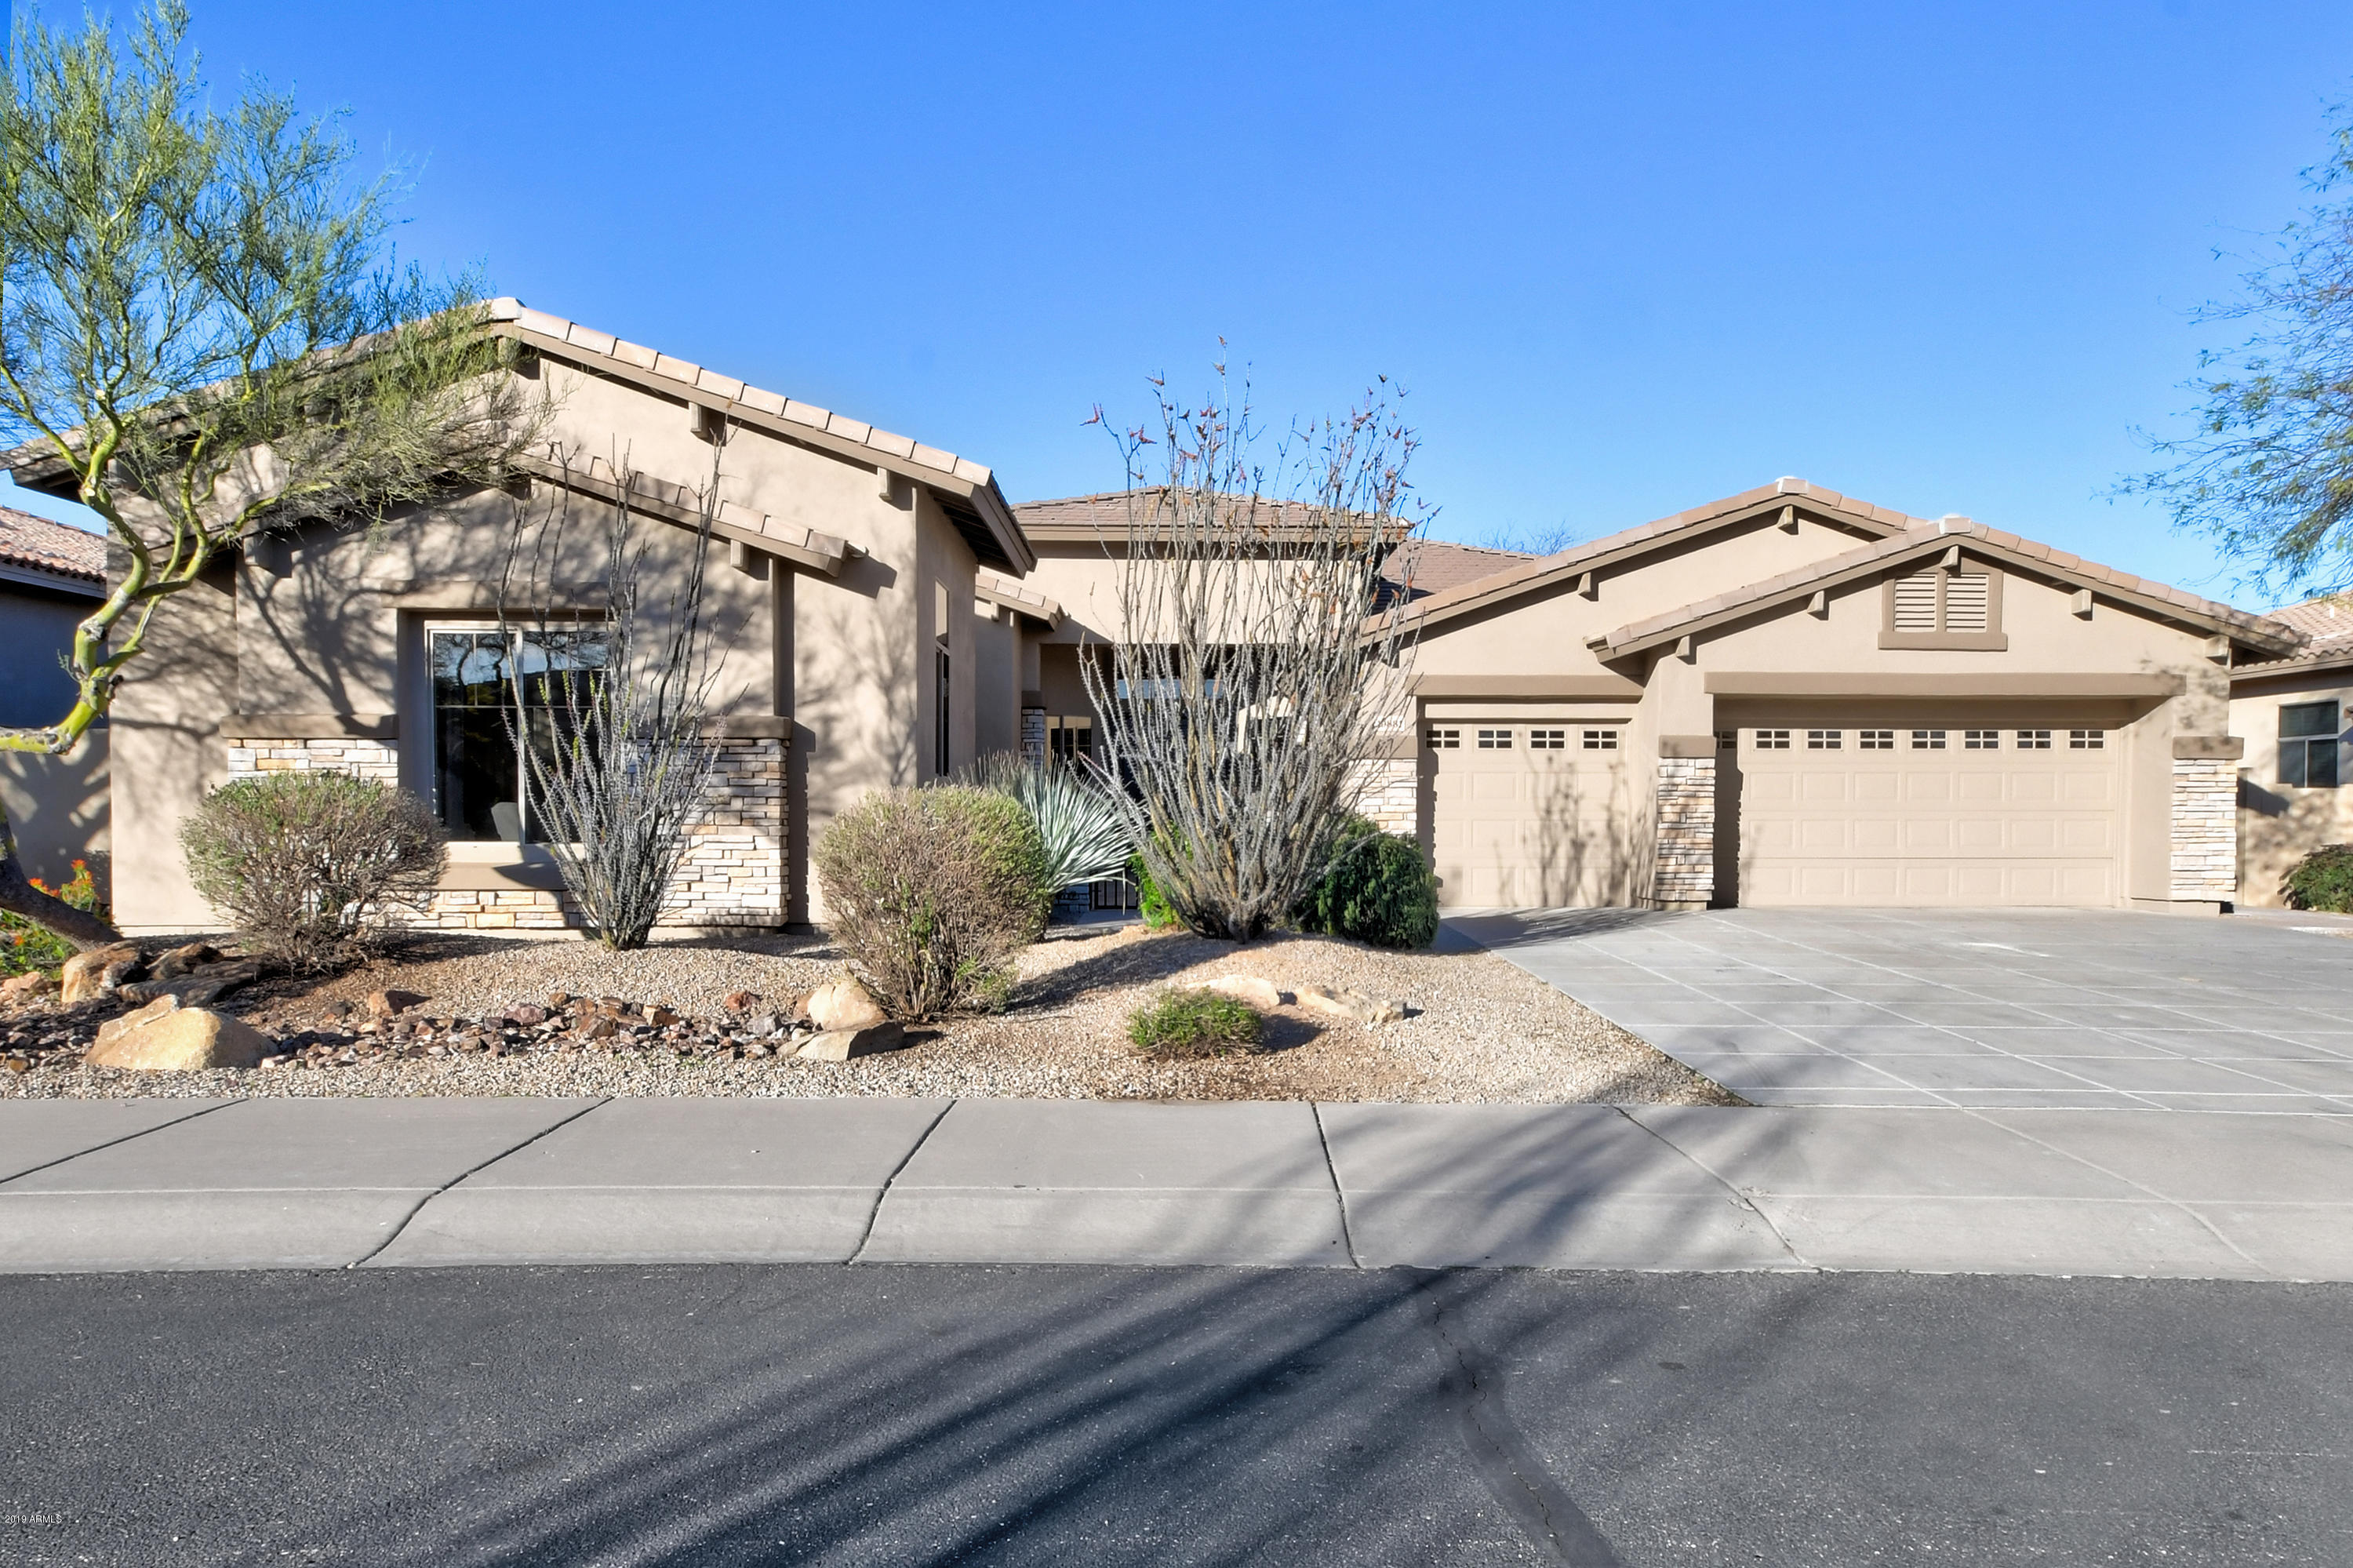 Photo of 19881 N 84TH Way, Scottsdale, AZ 85255